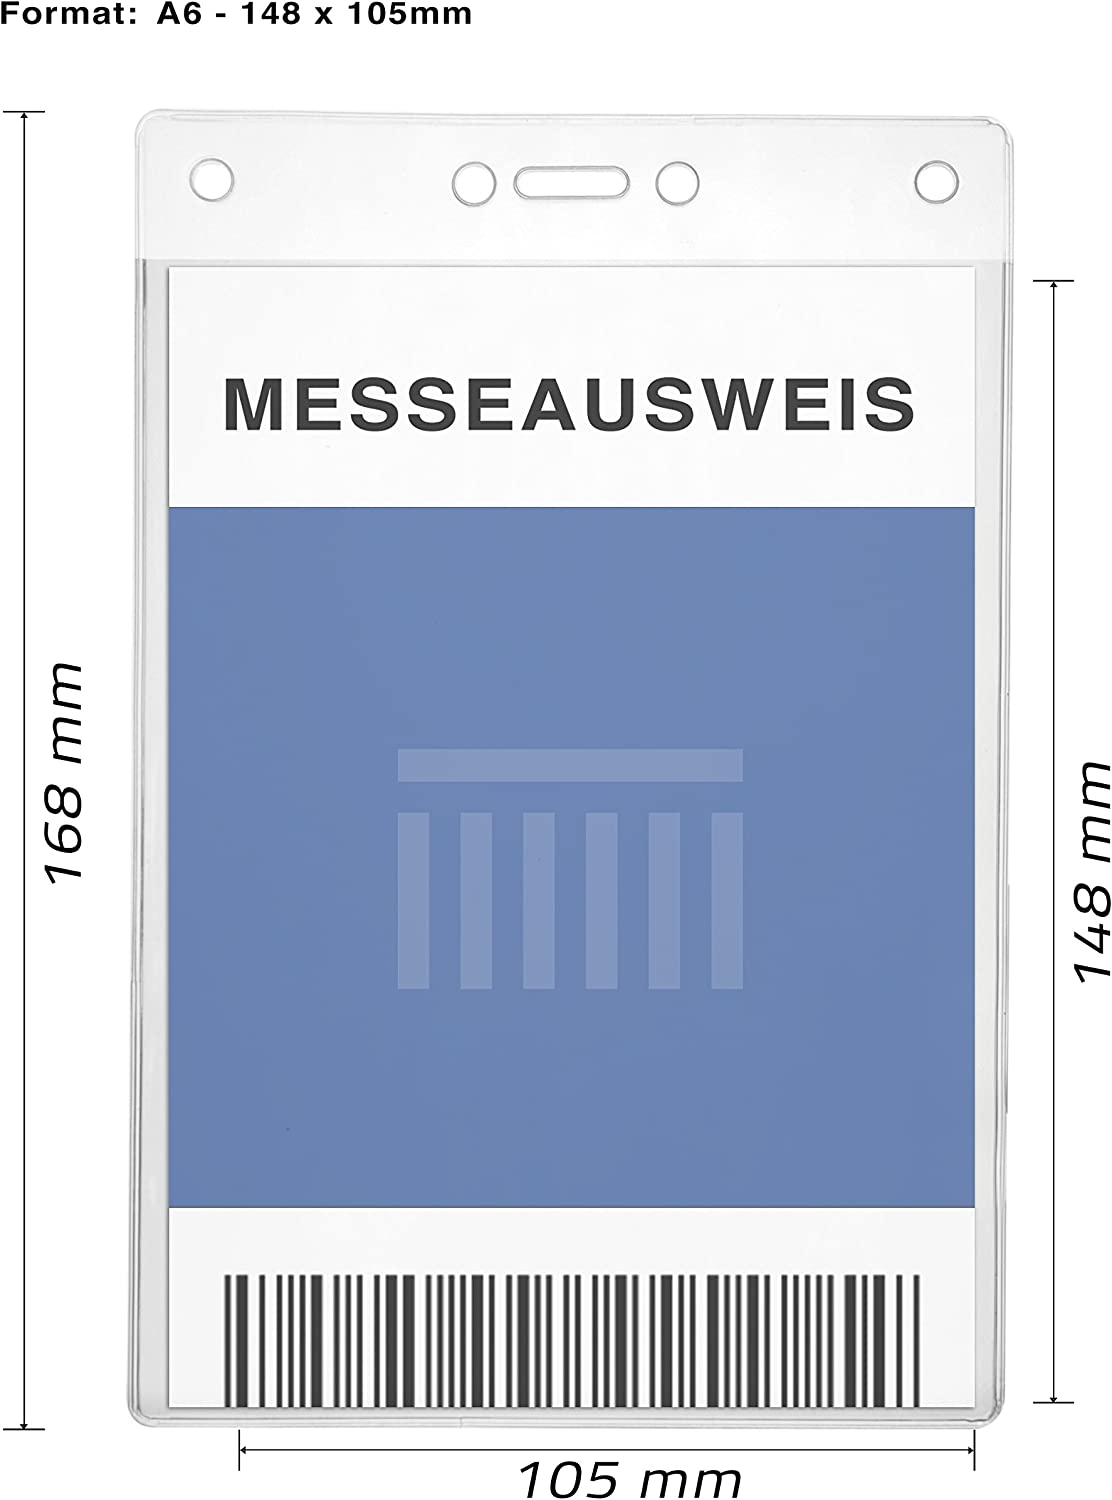 Holds A6 Card size 105 x 148mm CKB Ltd 20x A6 VERTICAL Extra Large Portrait Clear ID Badge Card Holders Carte ID Support De Badge Card Plastique 17.5cm x 11.8cm